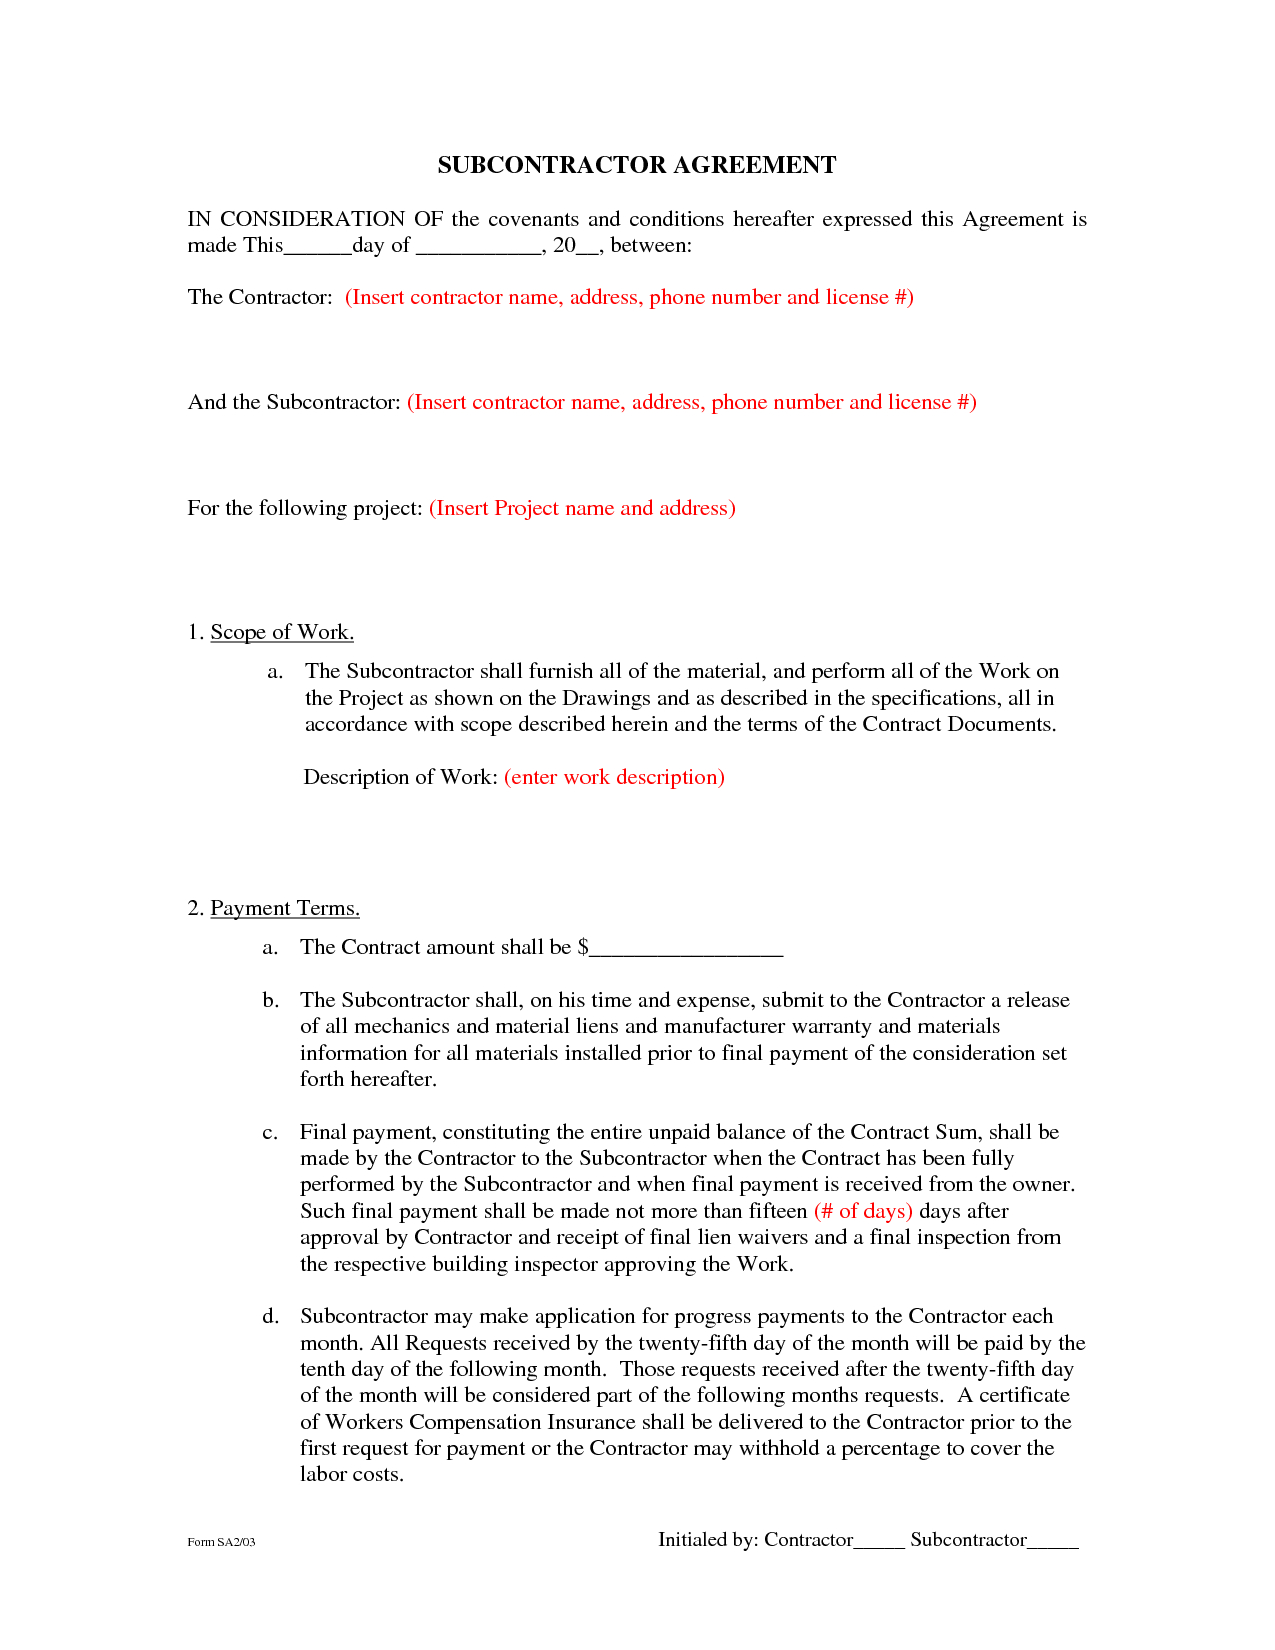 Subcontractor Agreement Template - Subcontractor Agreement Template - Free Printable Handyman Contracts